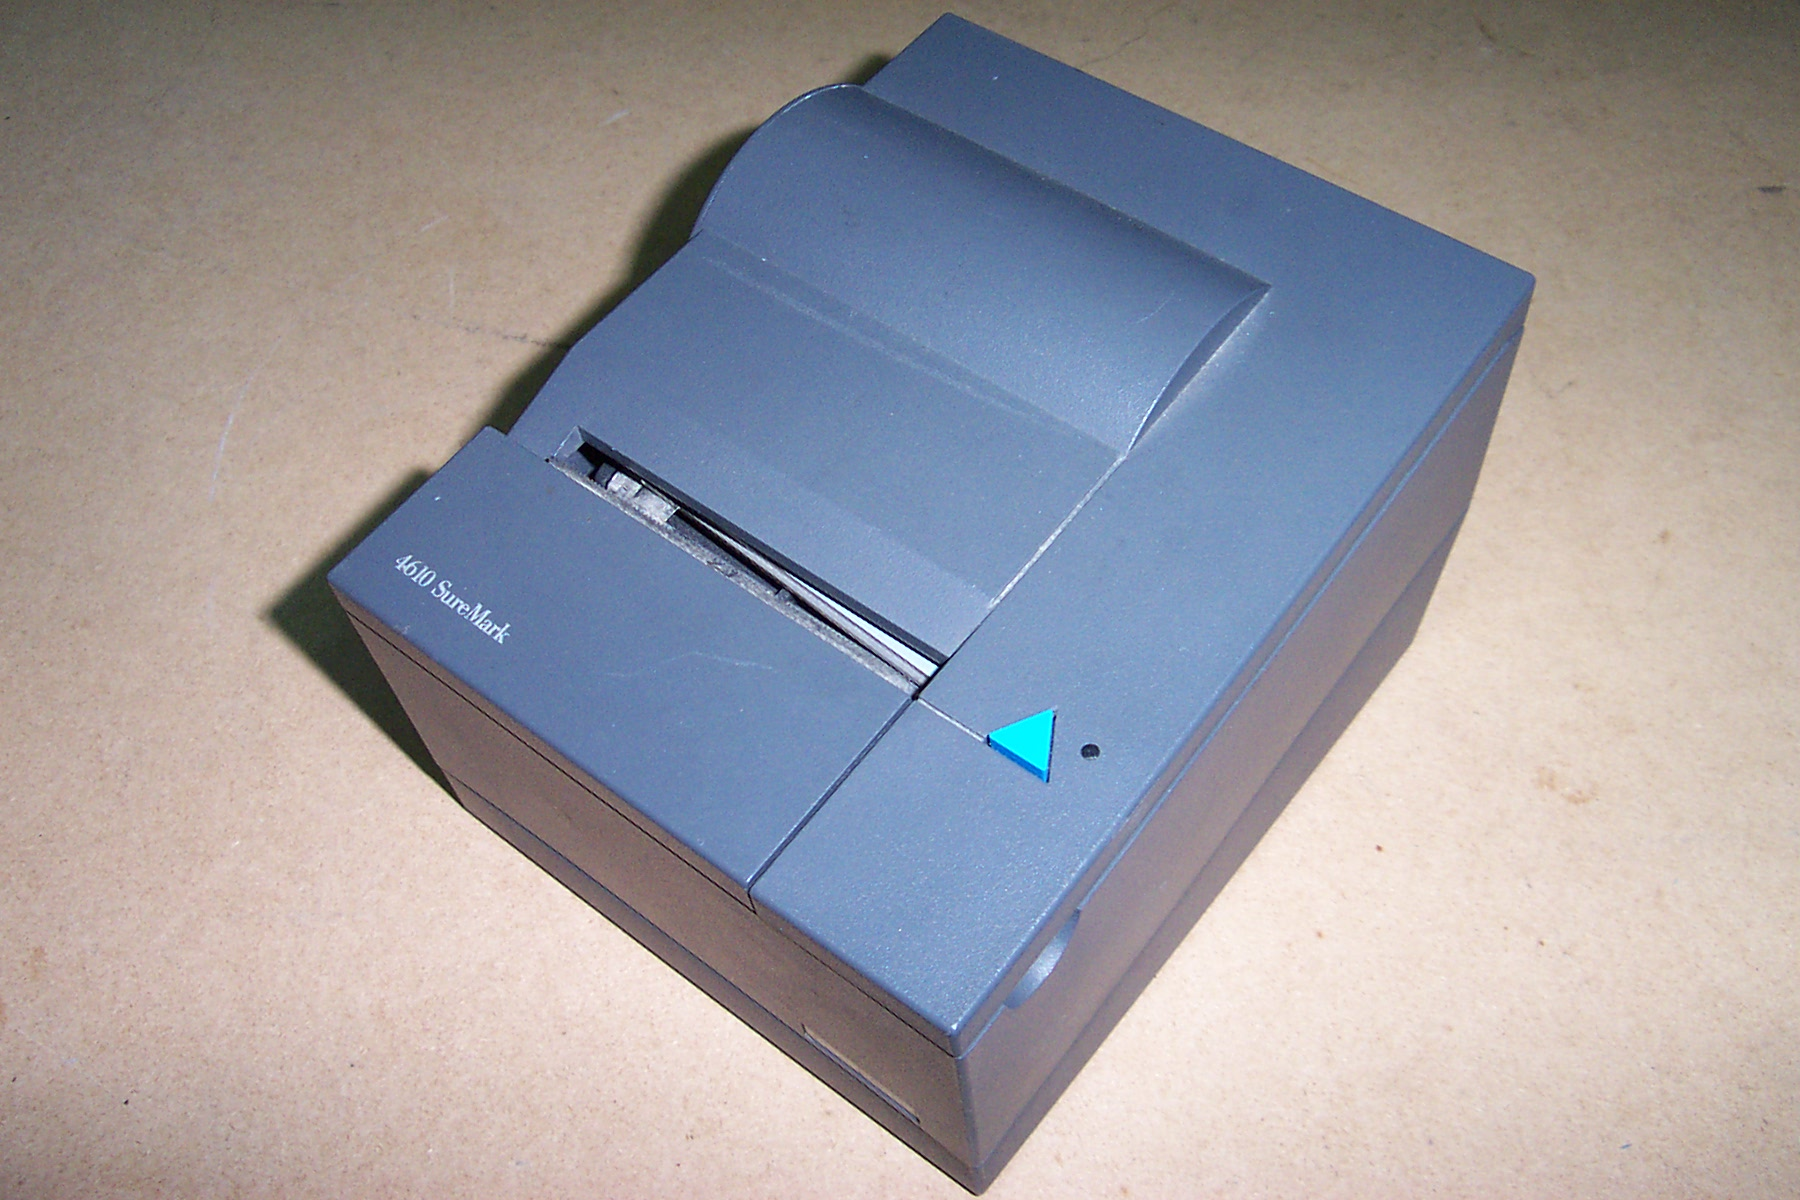 Driver ibm 4610 tf6 windows 7 - IBM SureMark Printer TF6 Thermal Label